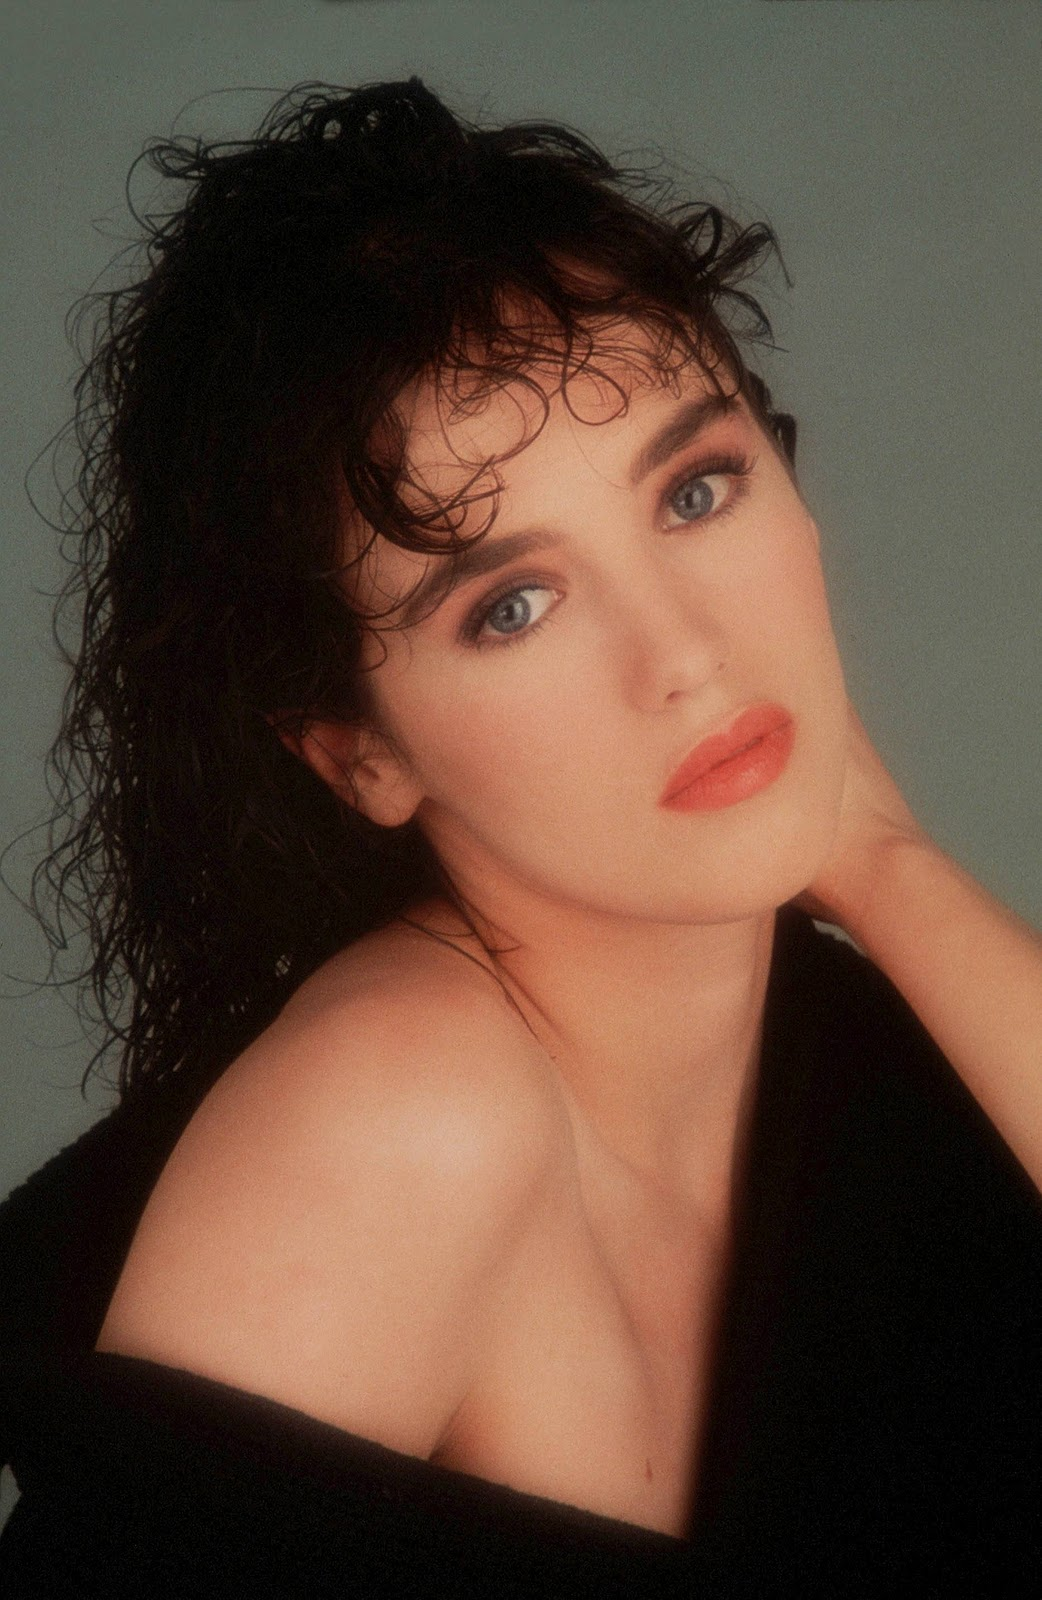 Wallpaper Images Download Girl Isabelle Adjani Photo 187 Of 222 Pics Wallpaper Photo